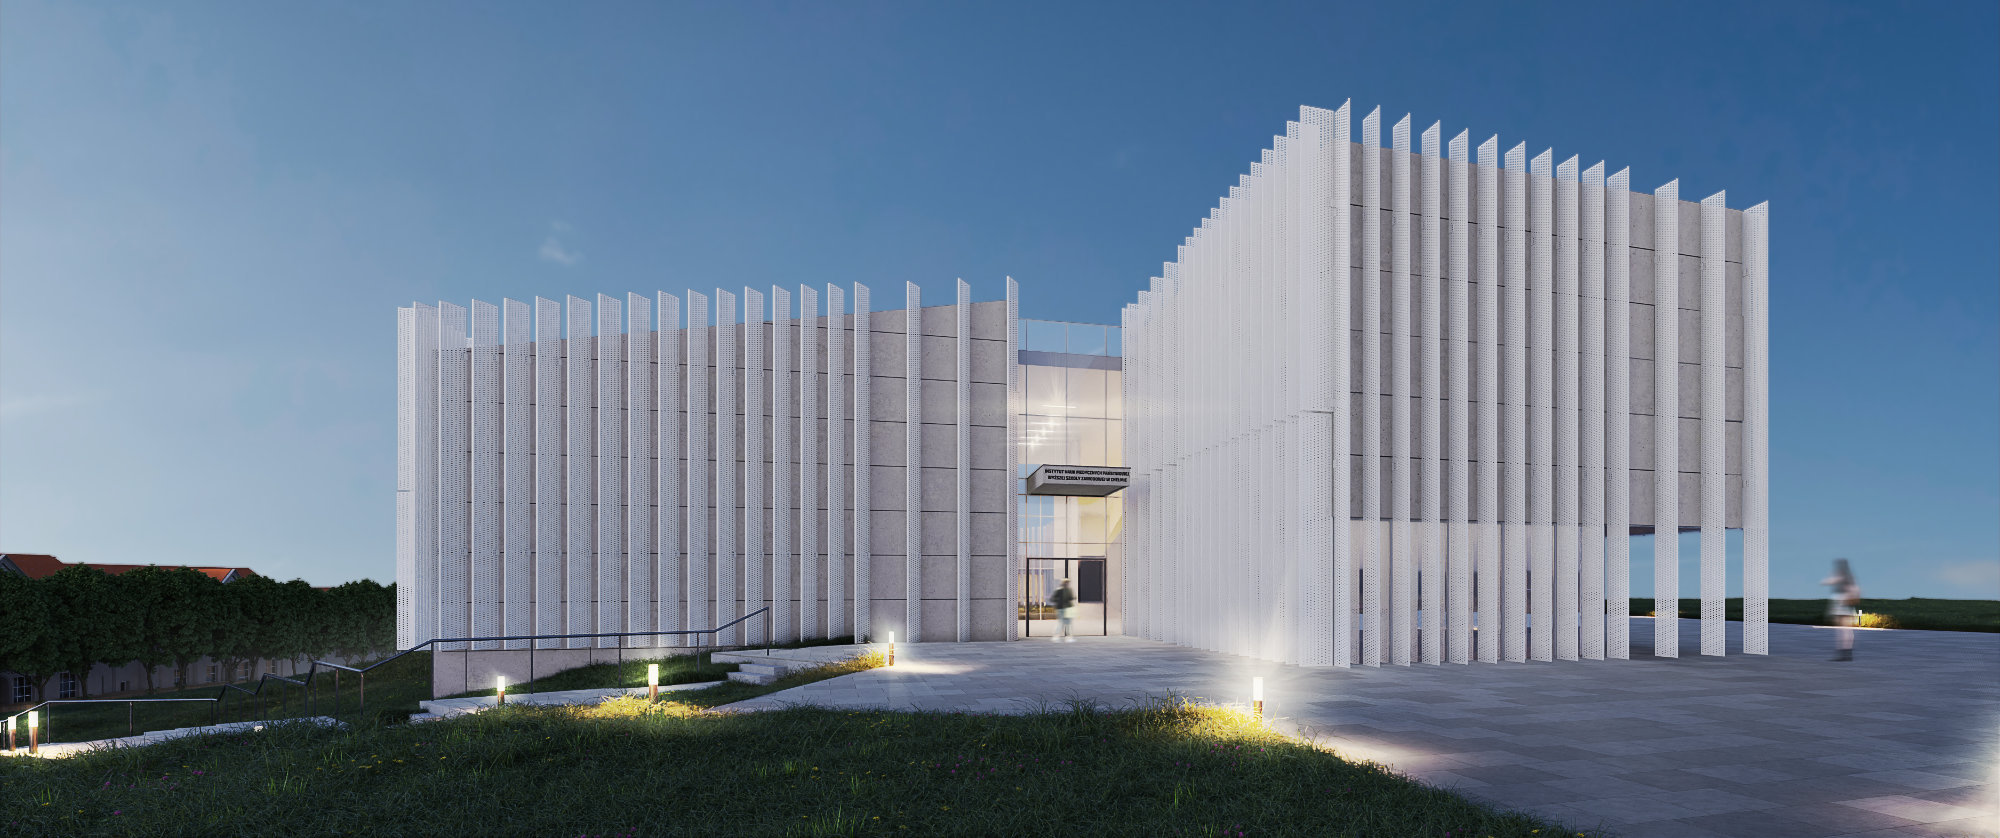 3d Architectural Visualisations, Animations, Virtual Reality